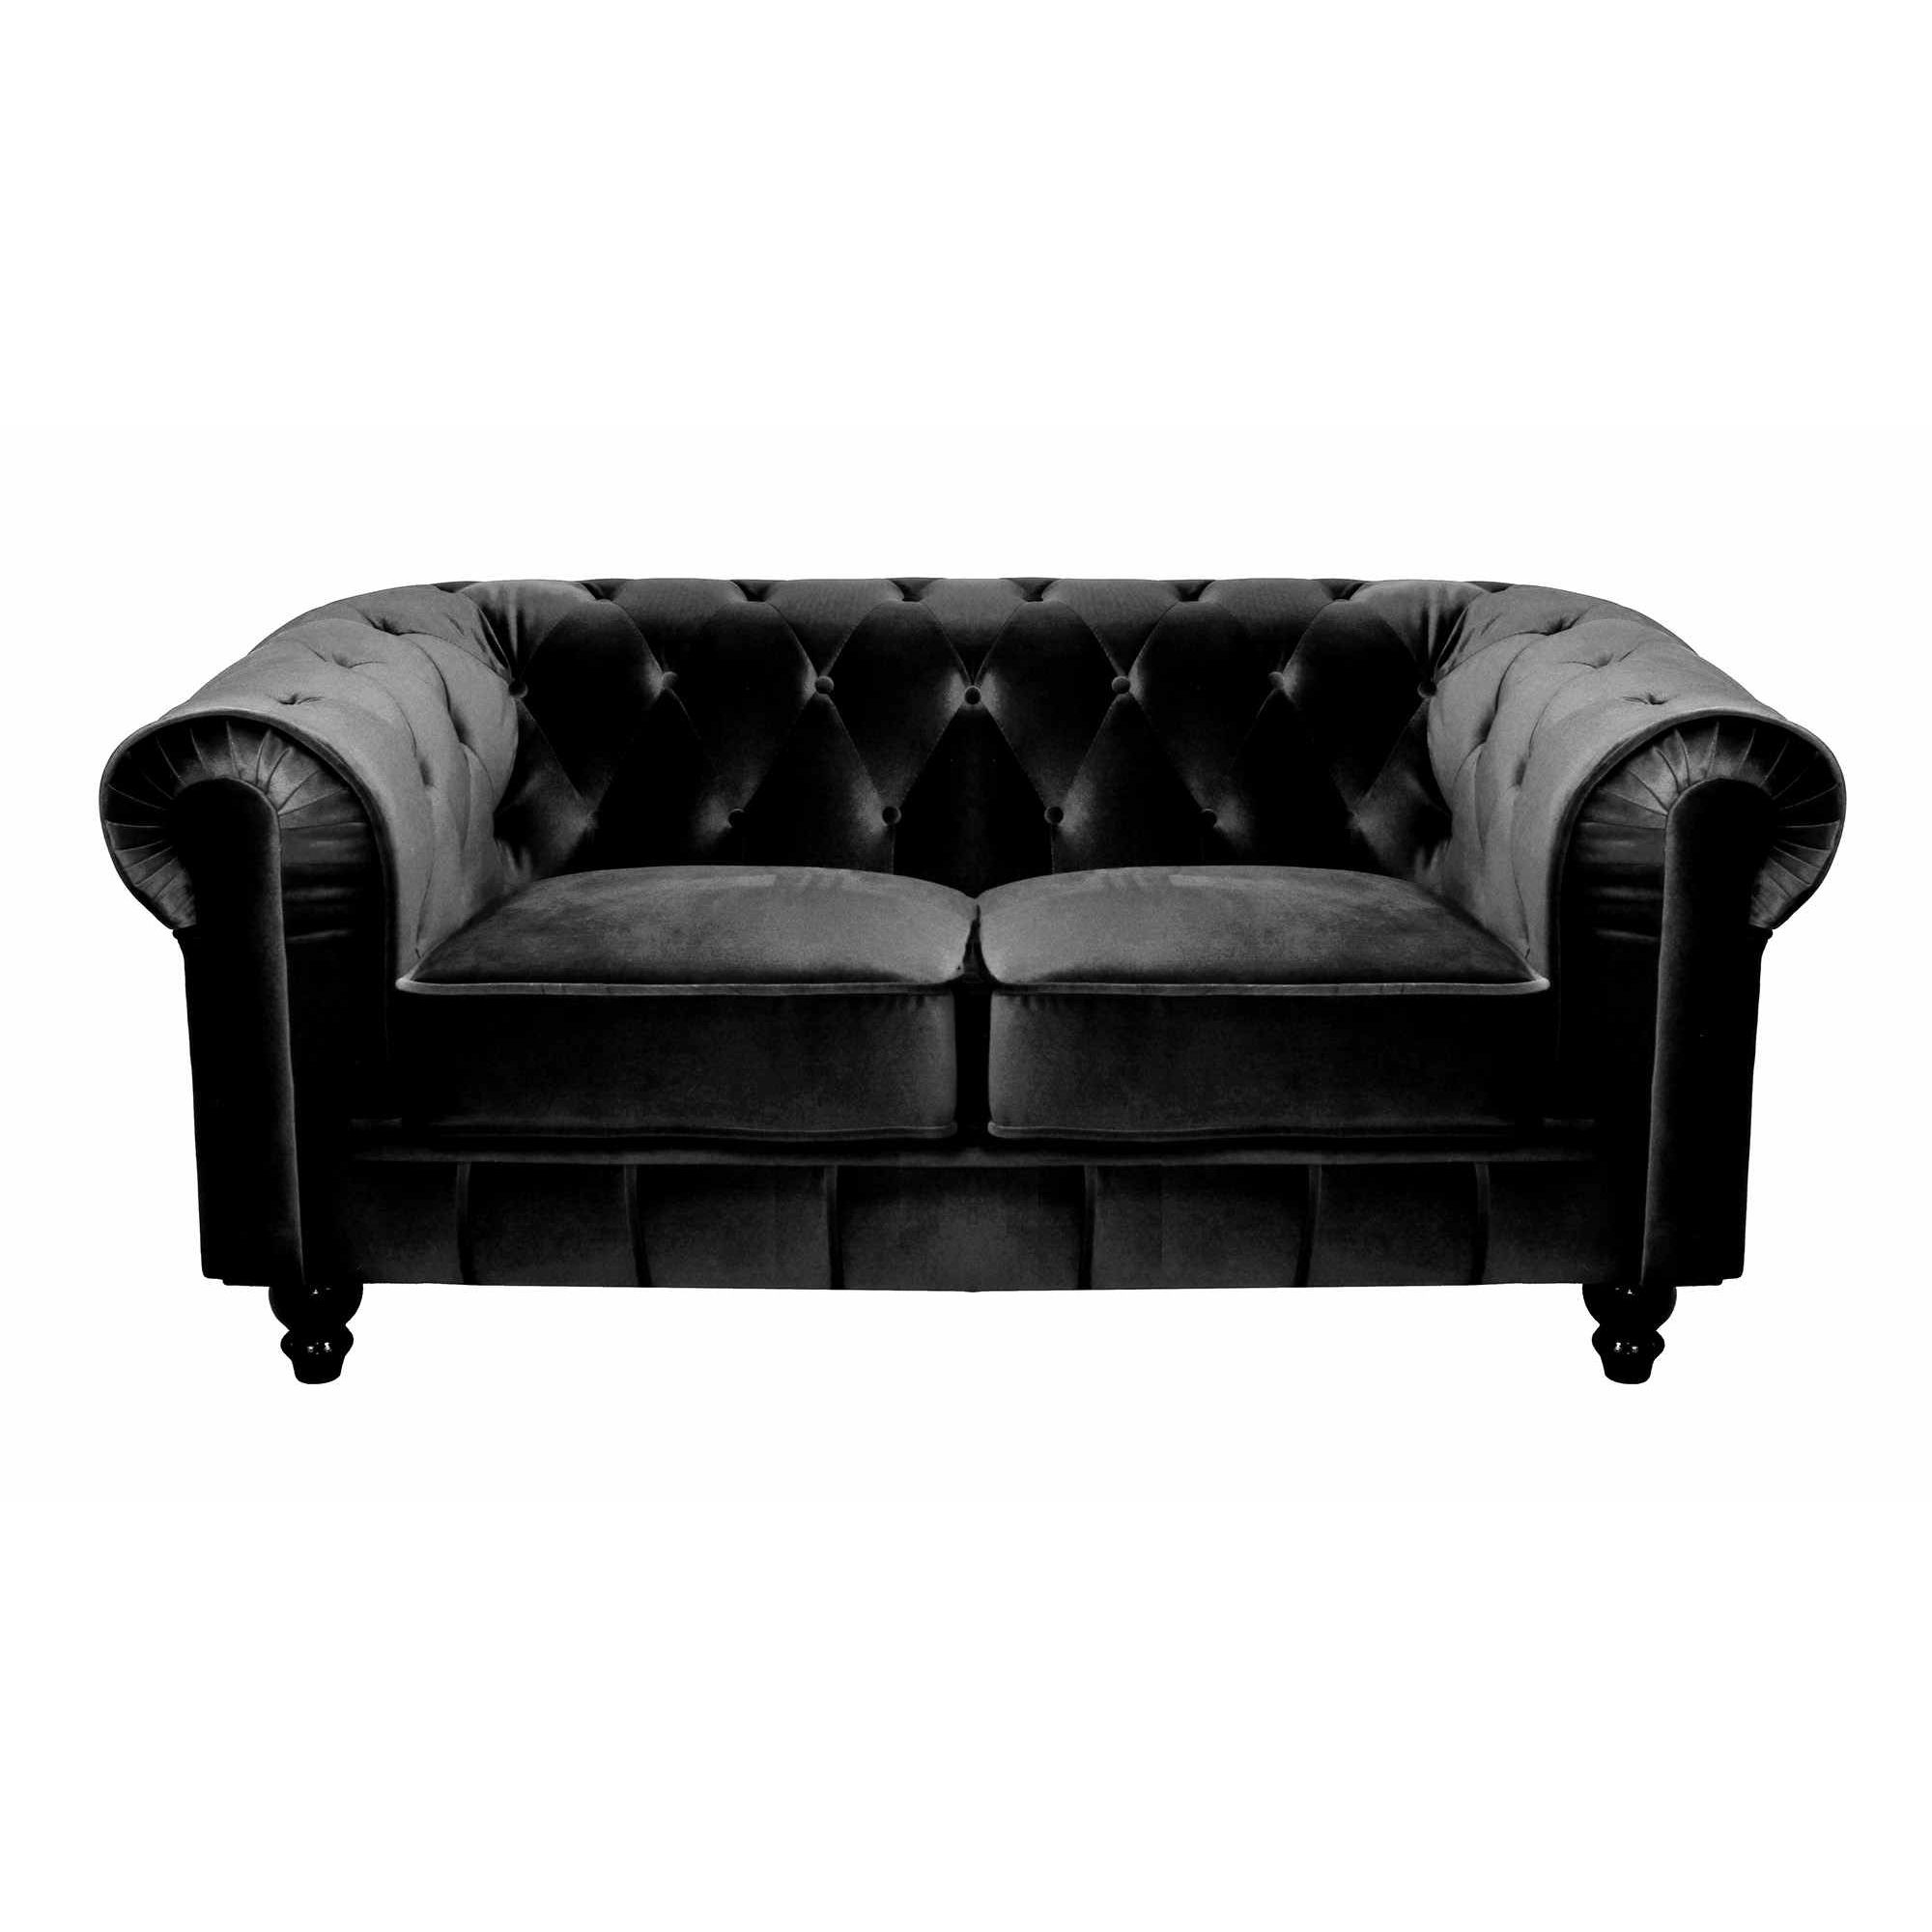 Deco in paris - Canape chesterfield noir ...